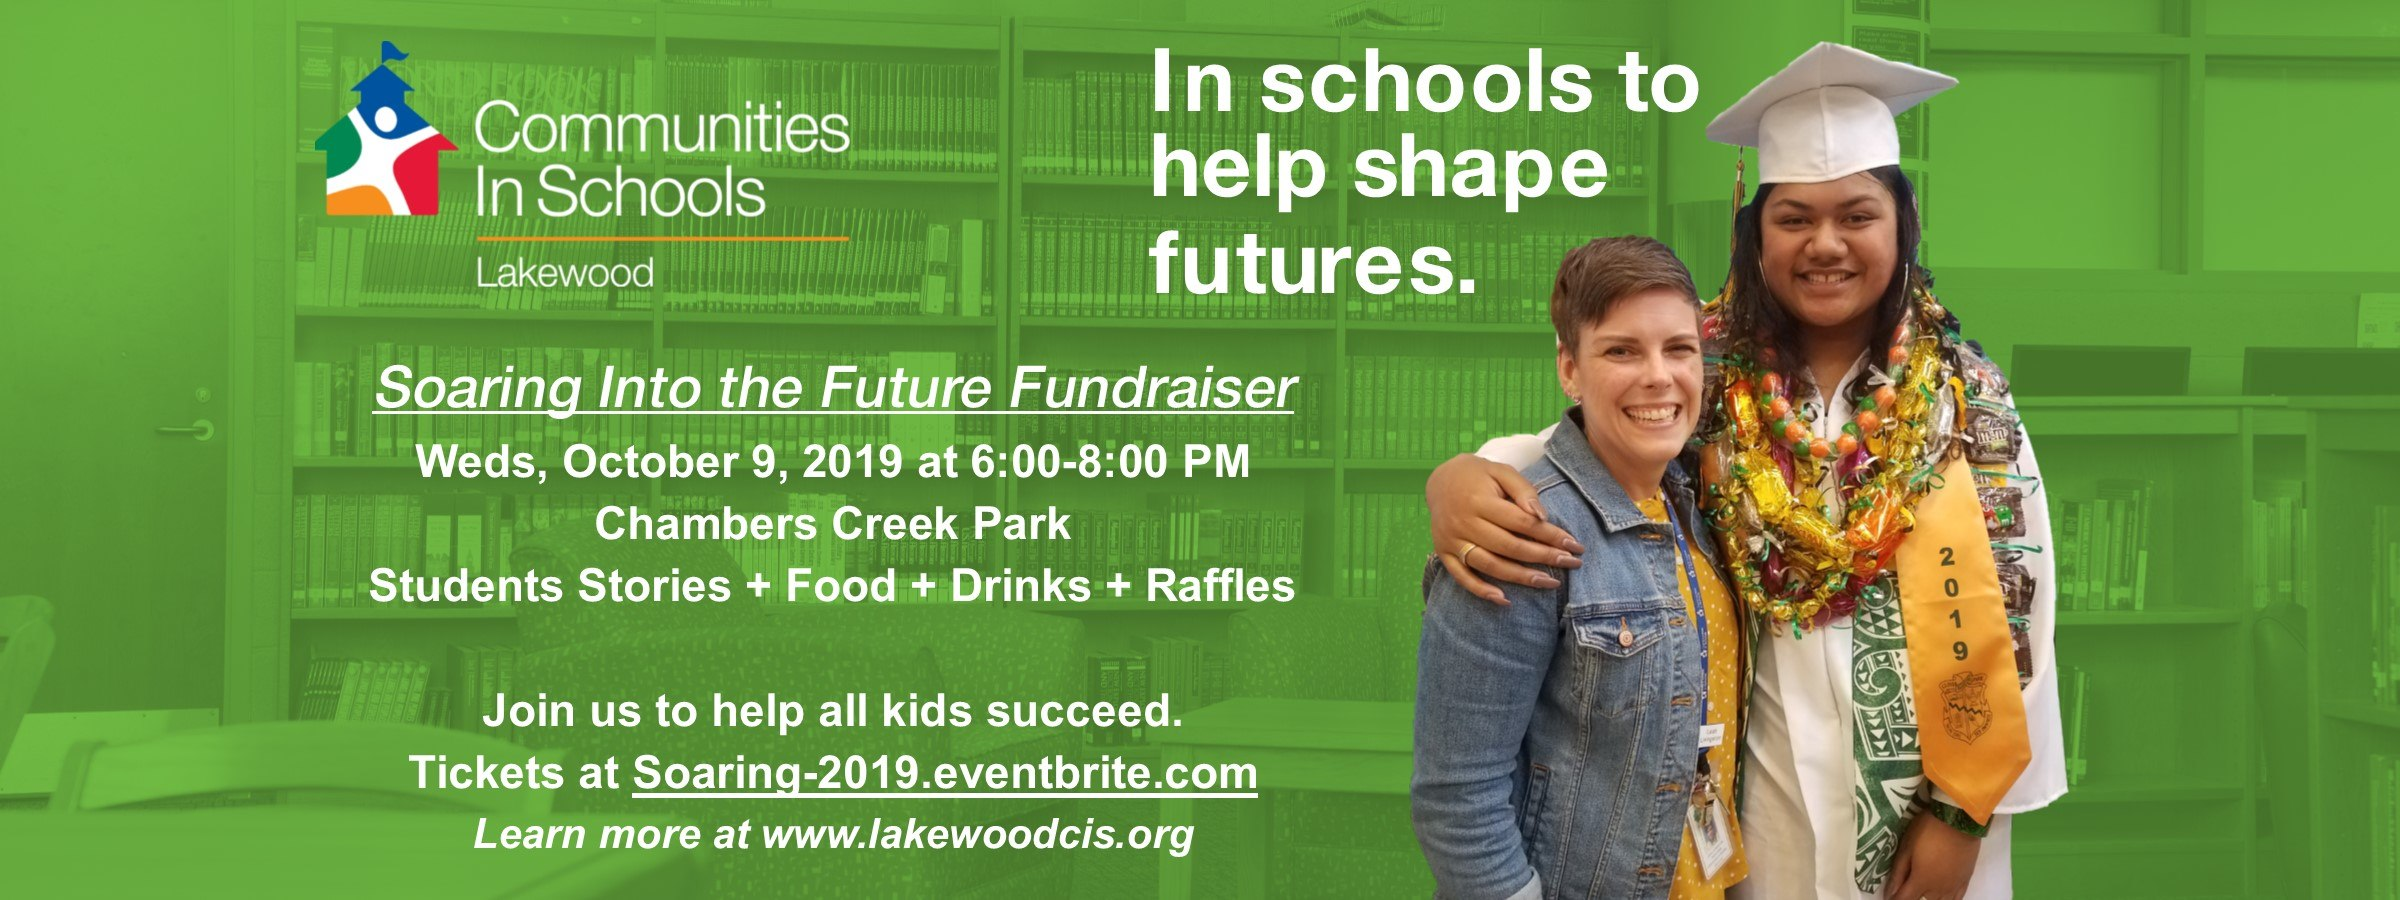 Image from   Communities in Schools of Lakewood